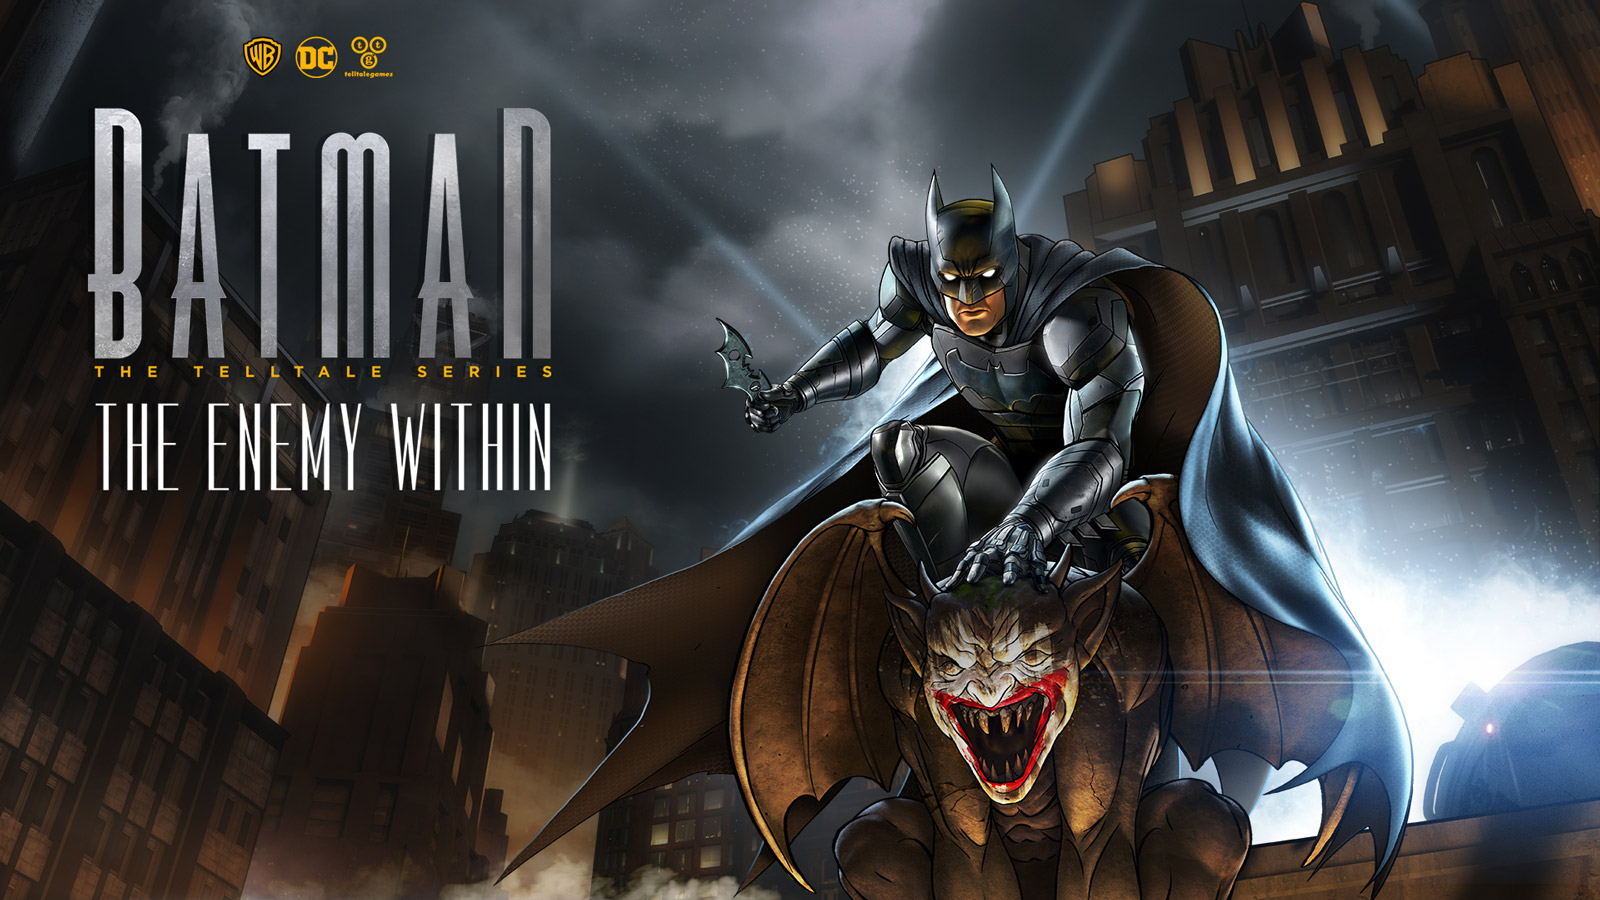 Batman: The Enemy Within - The Telltale Series Wallpaper in 1600x900